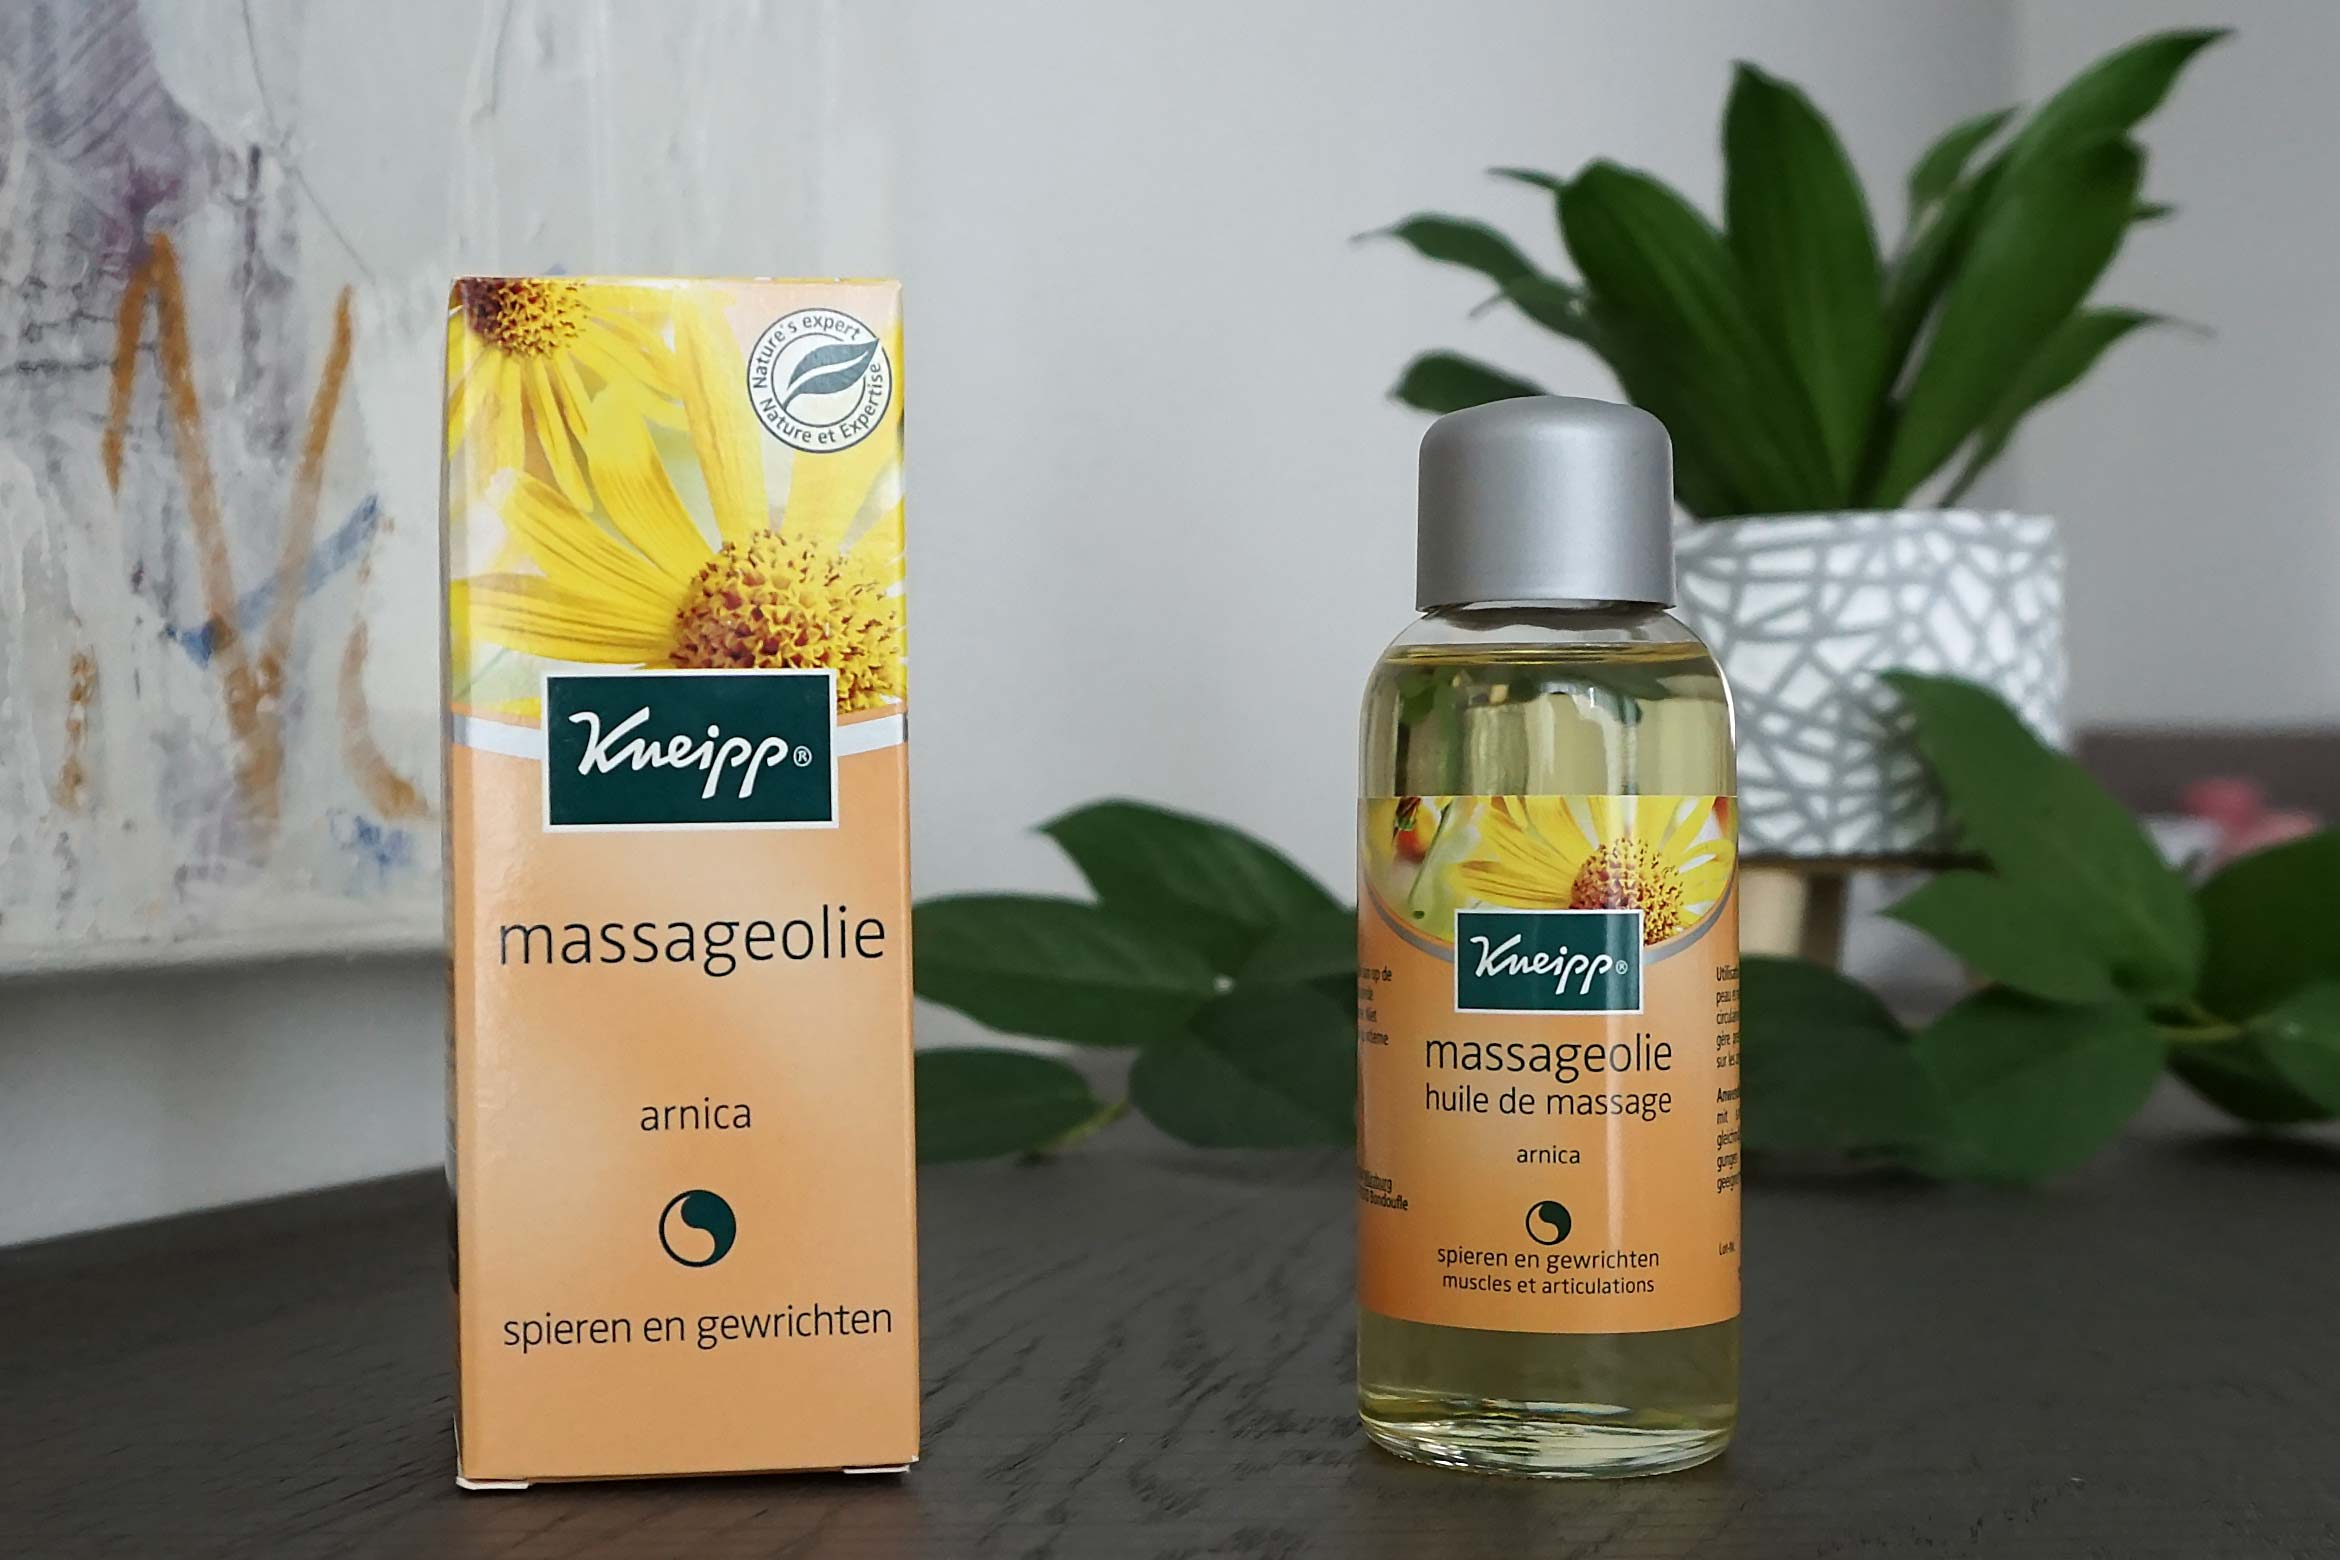 kneipp arnica massageolie review